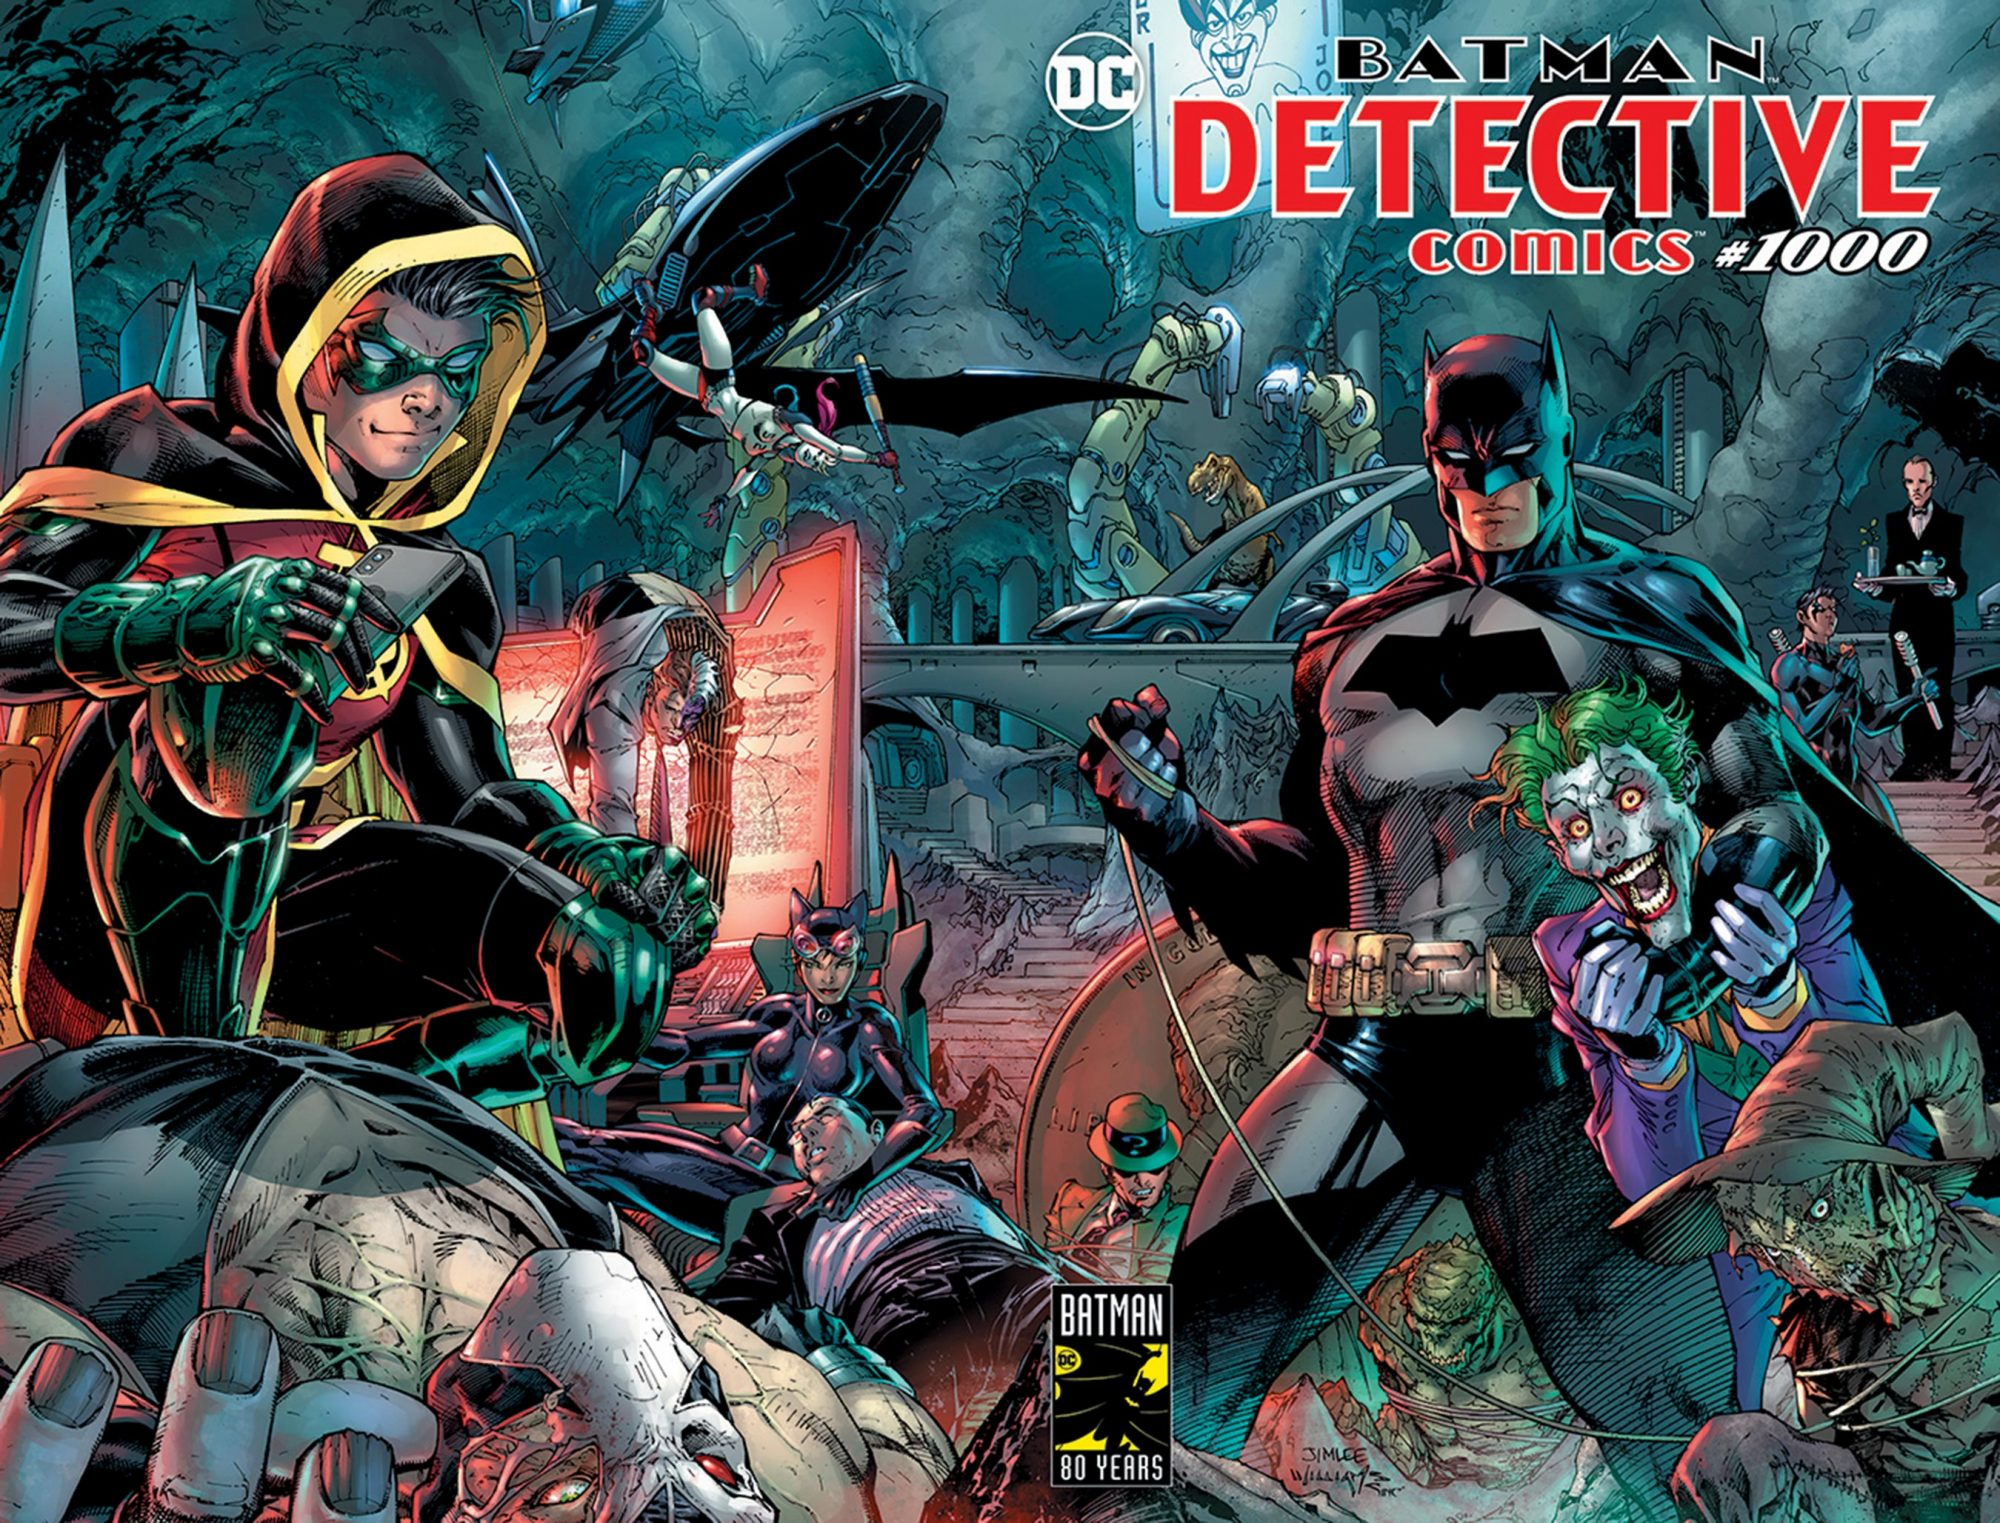 Detective Comics' #1000CR: DC Comics